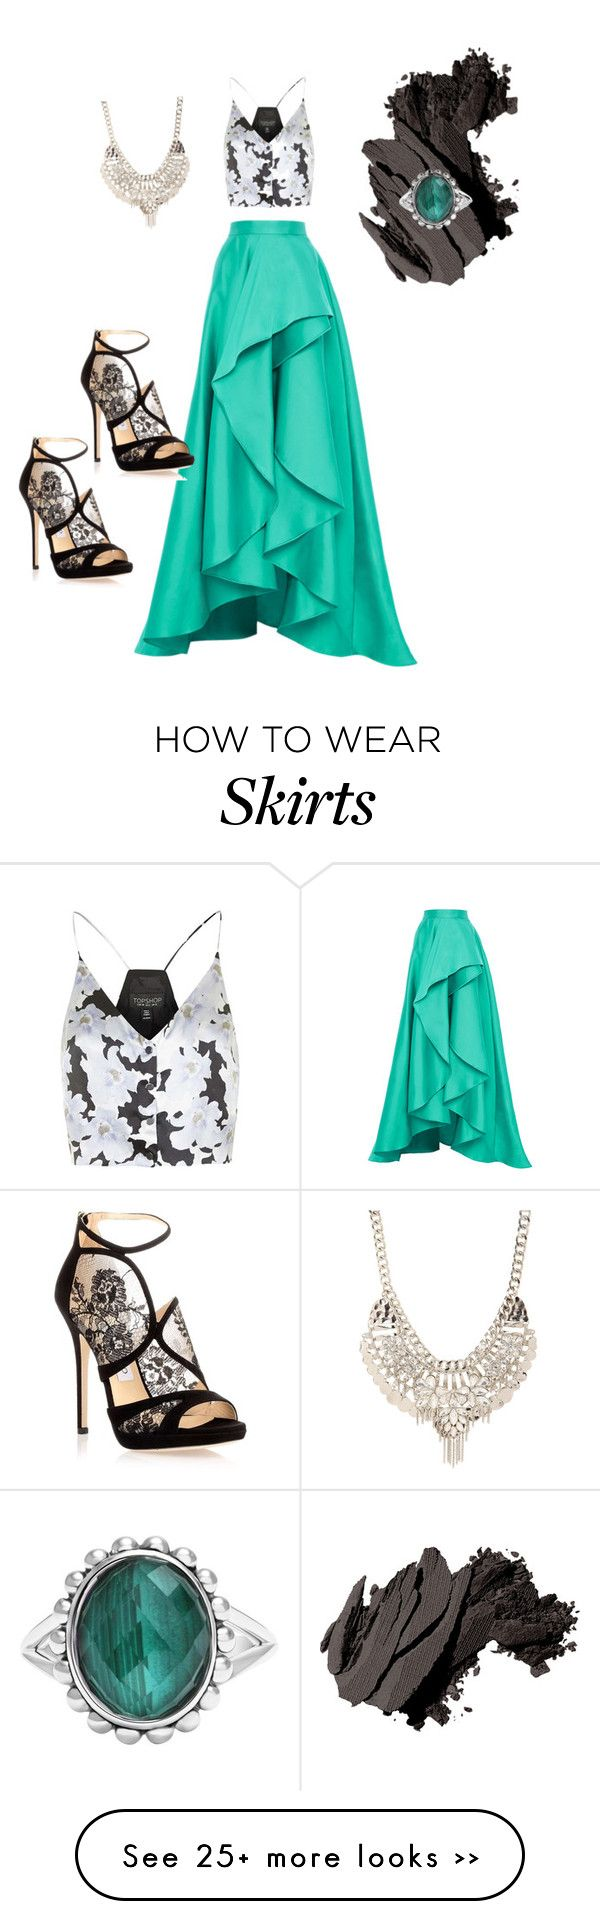 """Skirt the top..."" by rituukocchar on Polyvore featuring Monique Lhuillier, Topshop, Jimmy Choo, Bobbi Brown Cosmetics and Jane Norman"